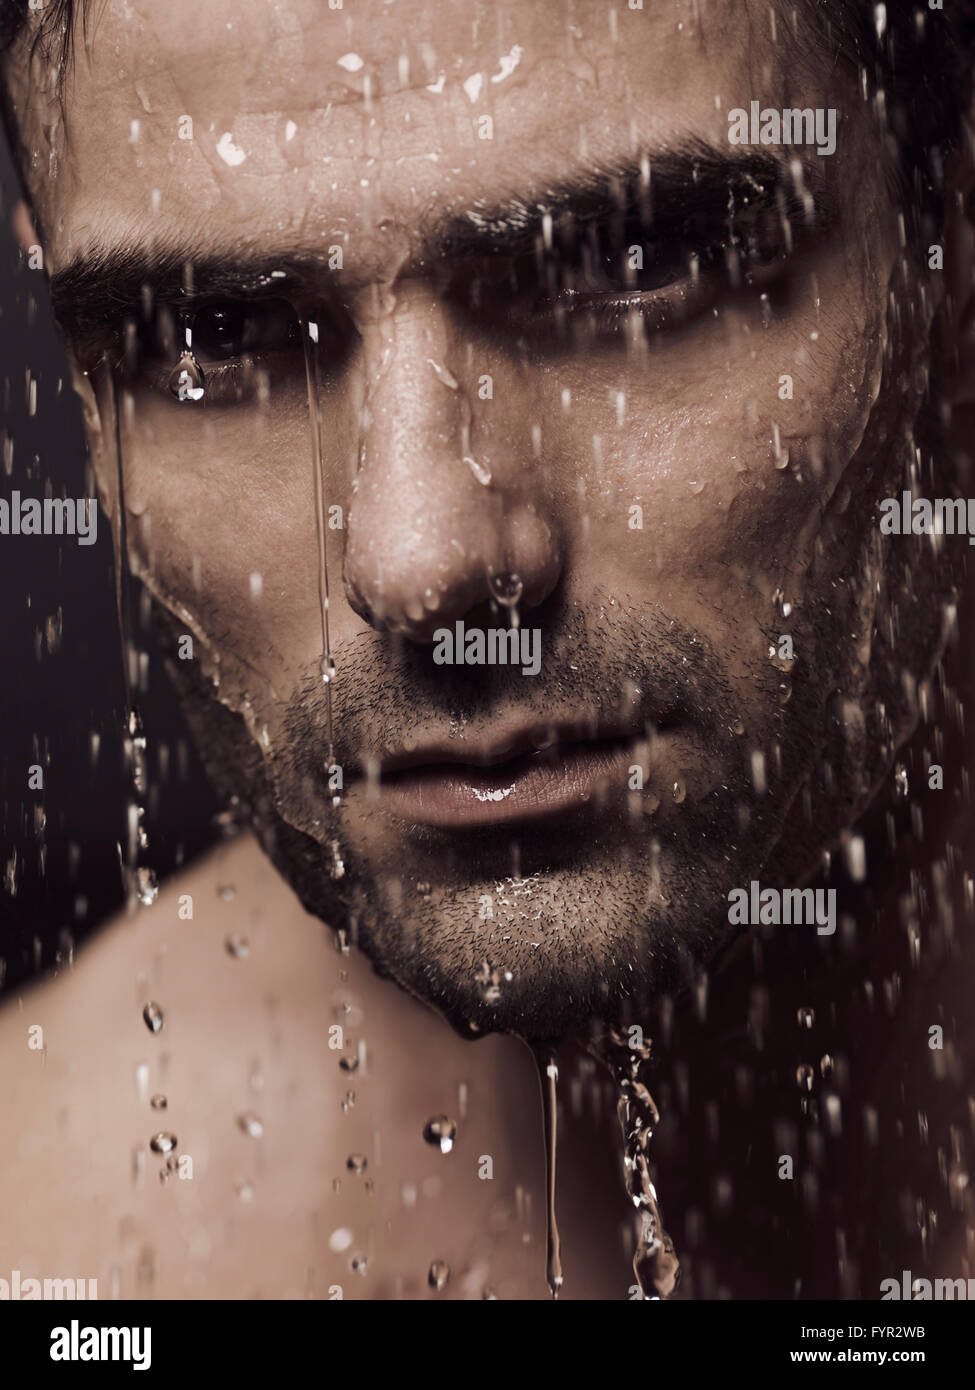 Water pouring from man's face, portrait - Stock Image